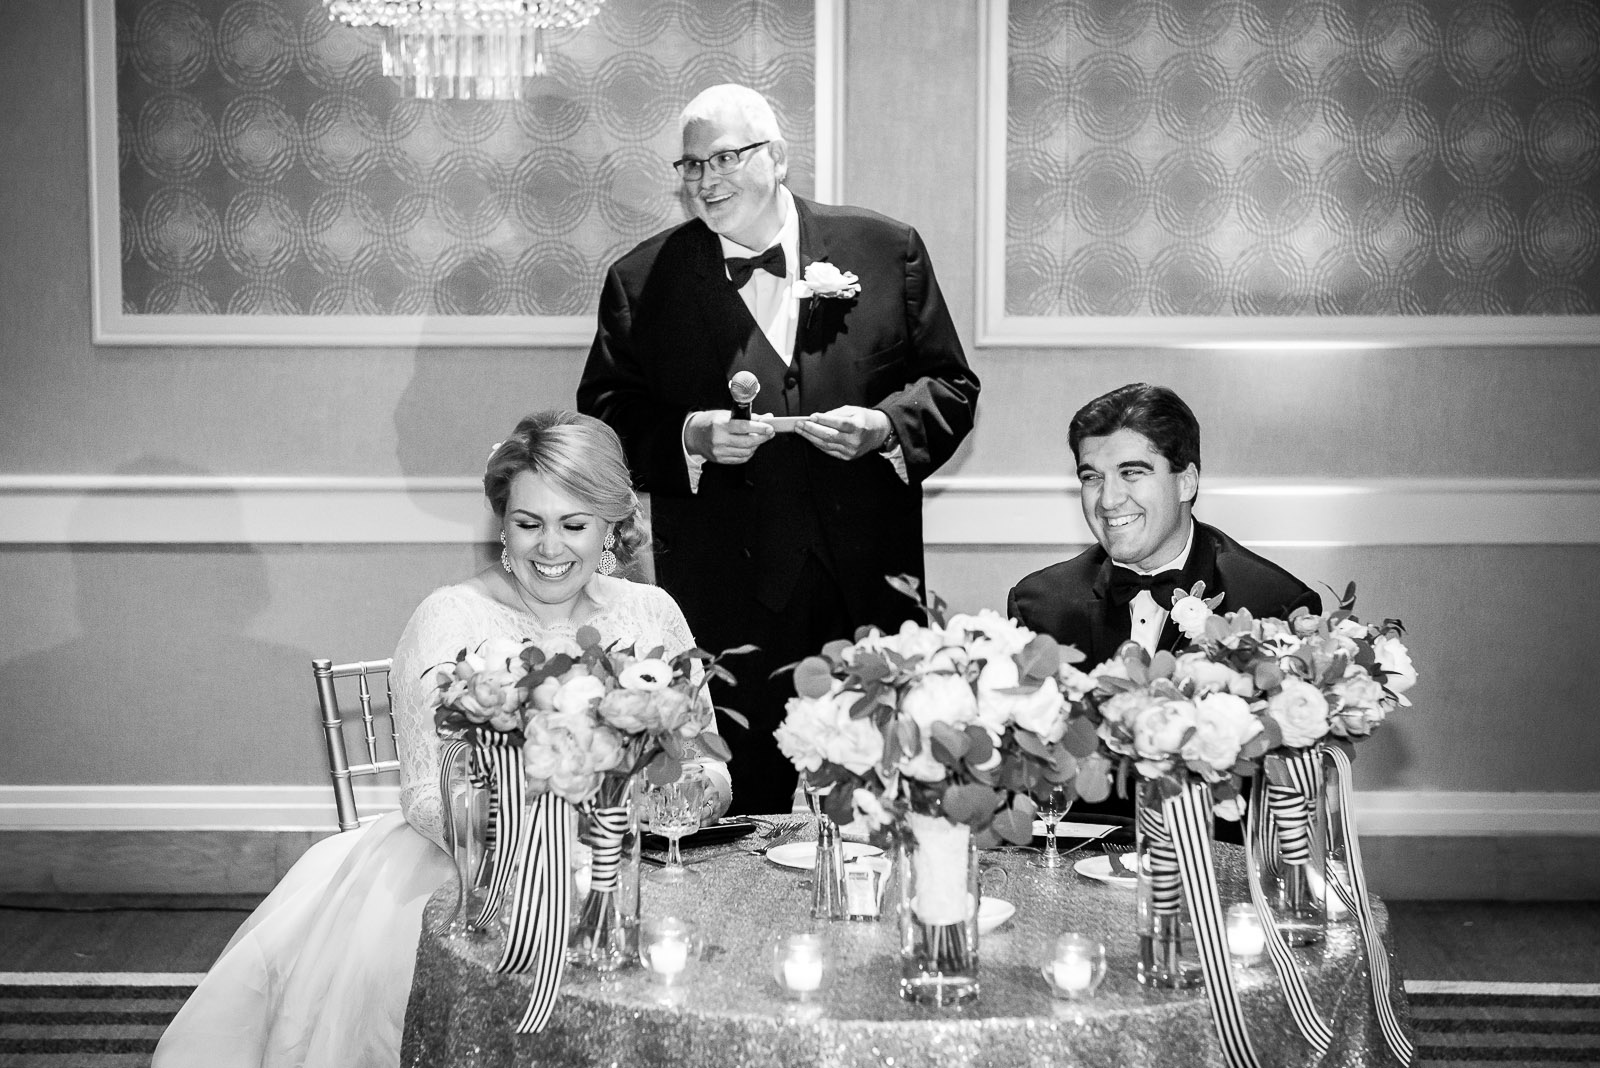 eric_and_christy_photographers_blog_wedding_emilypeter-43